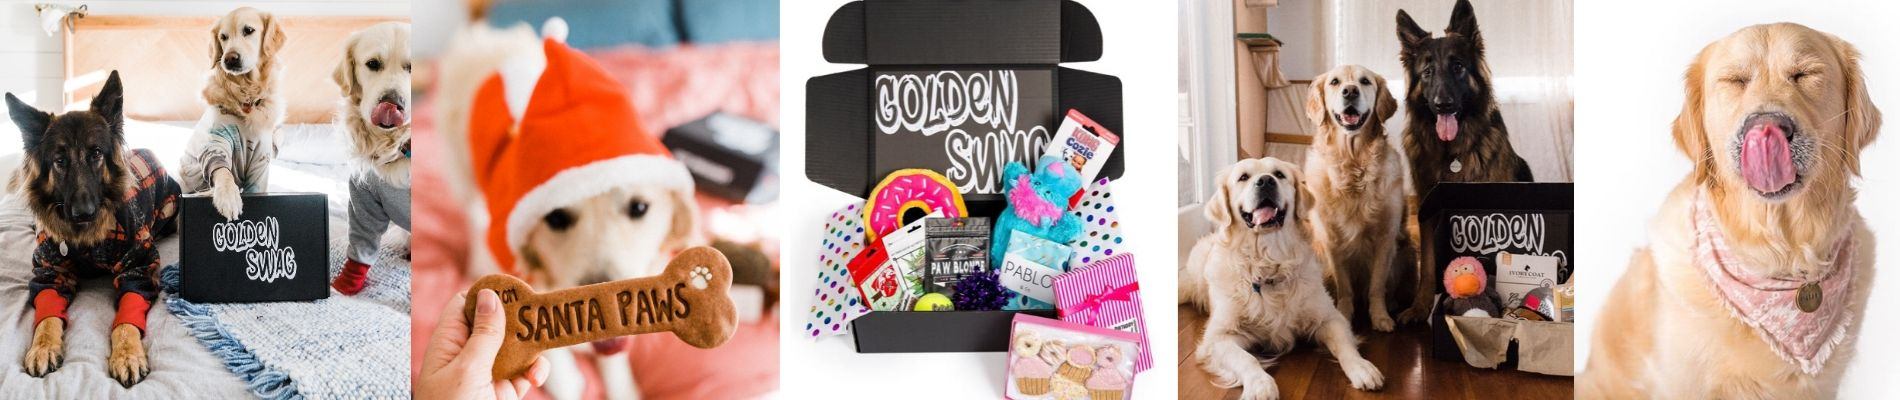 Themed Gift Box for Dogs   Surprise Gifts   Golden gallery image